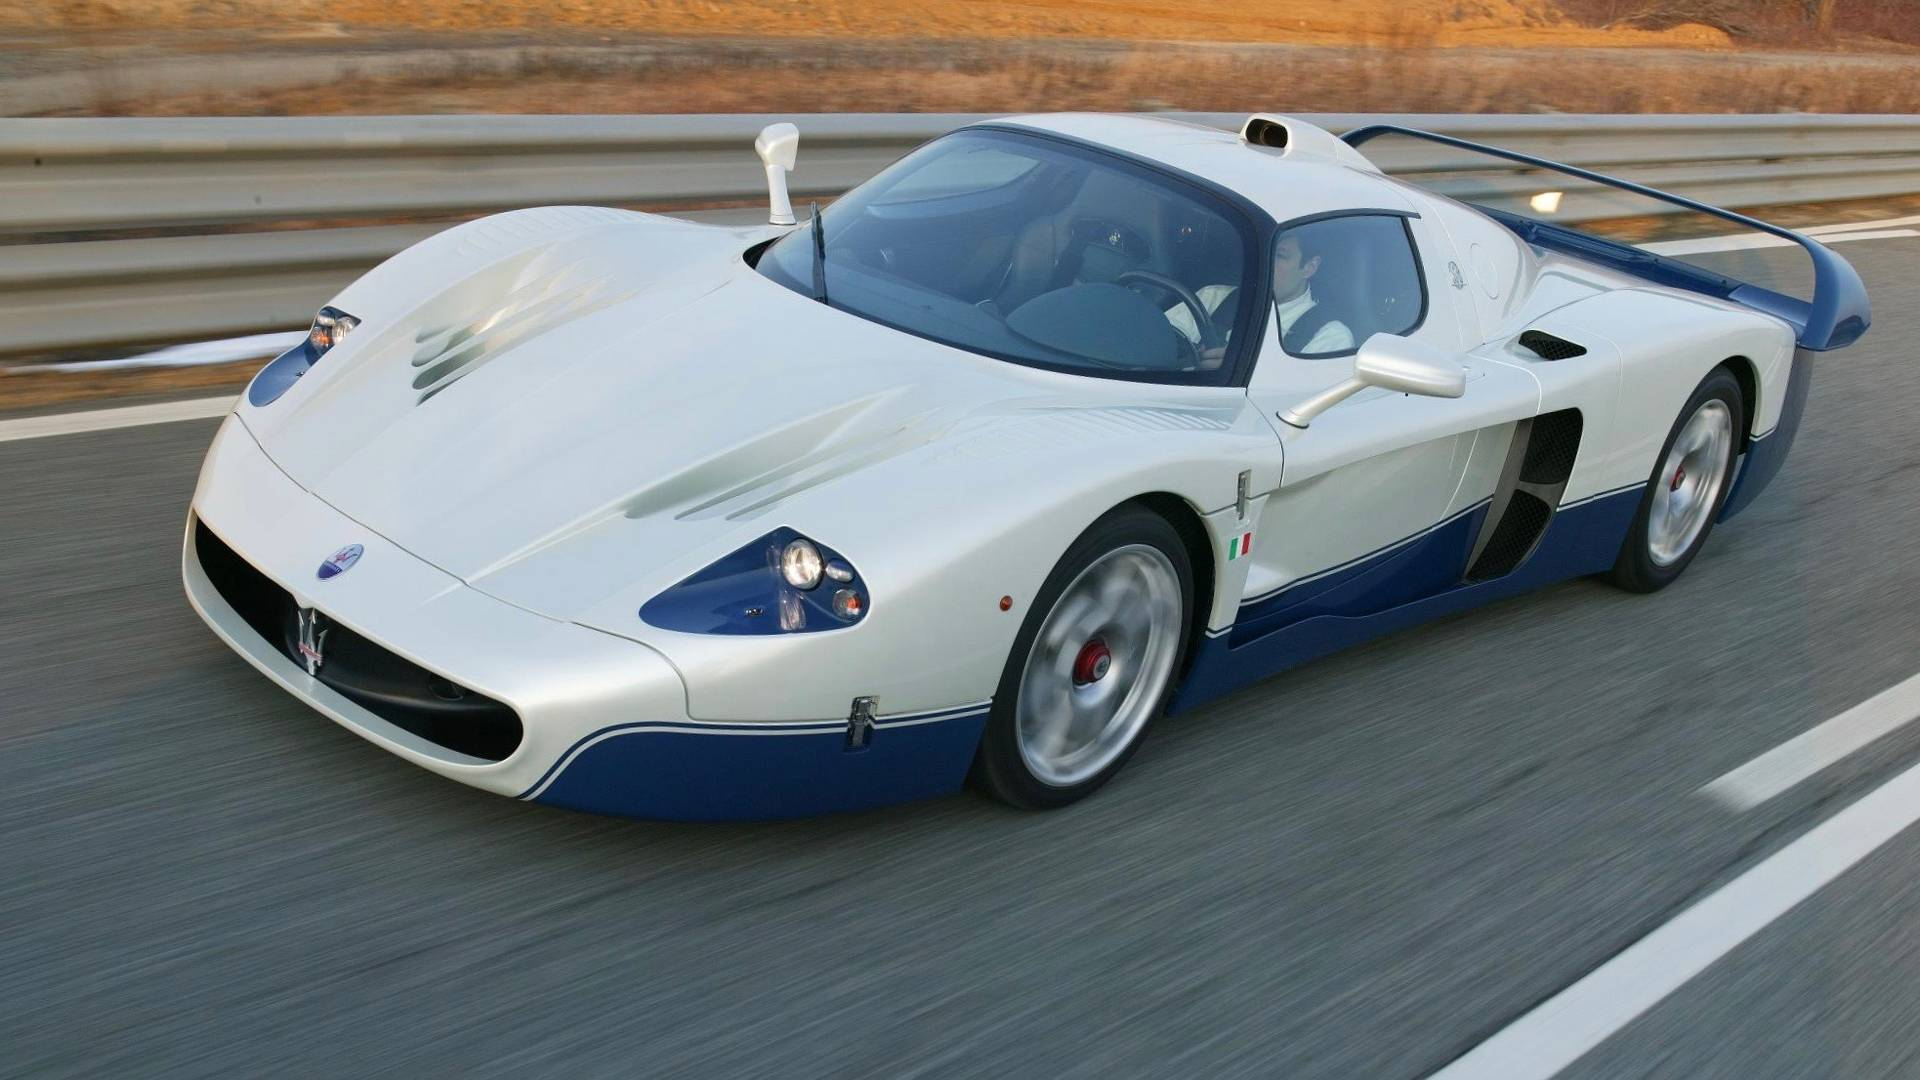 Motor1.com Legends: 2004 Maserati MC12